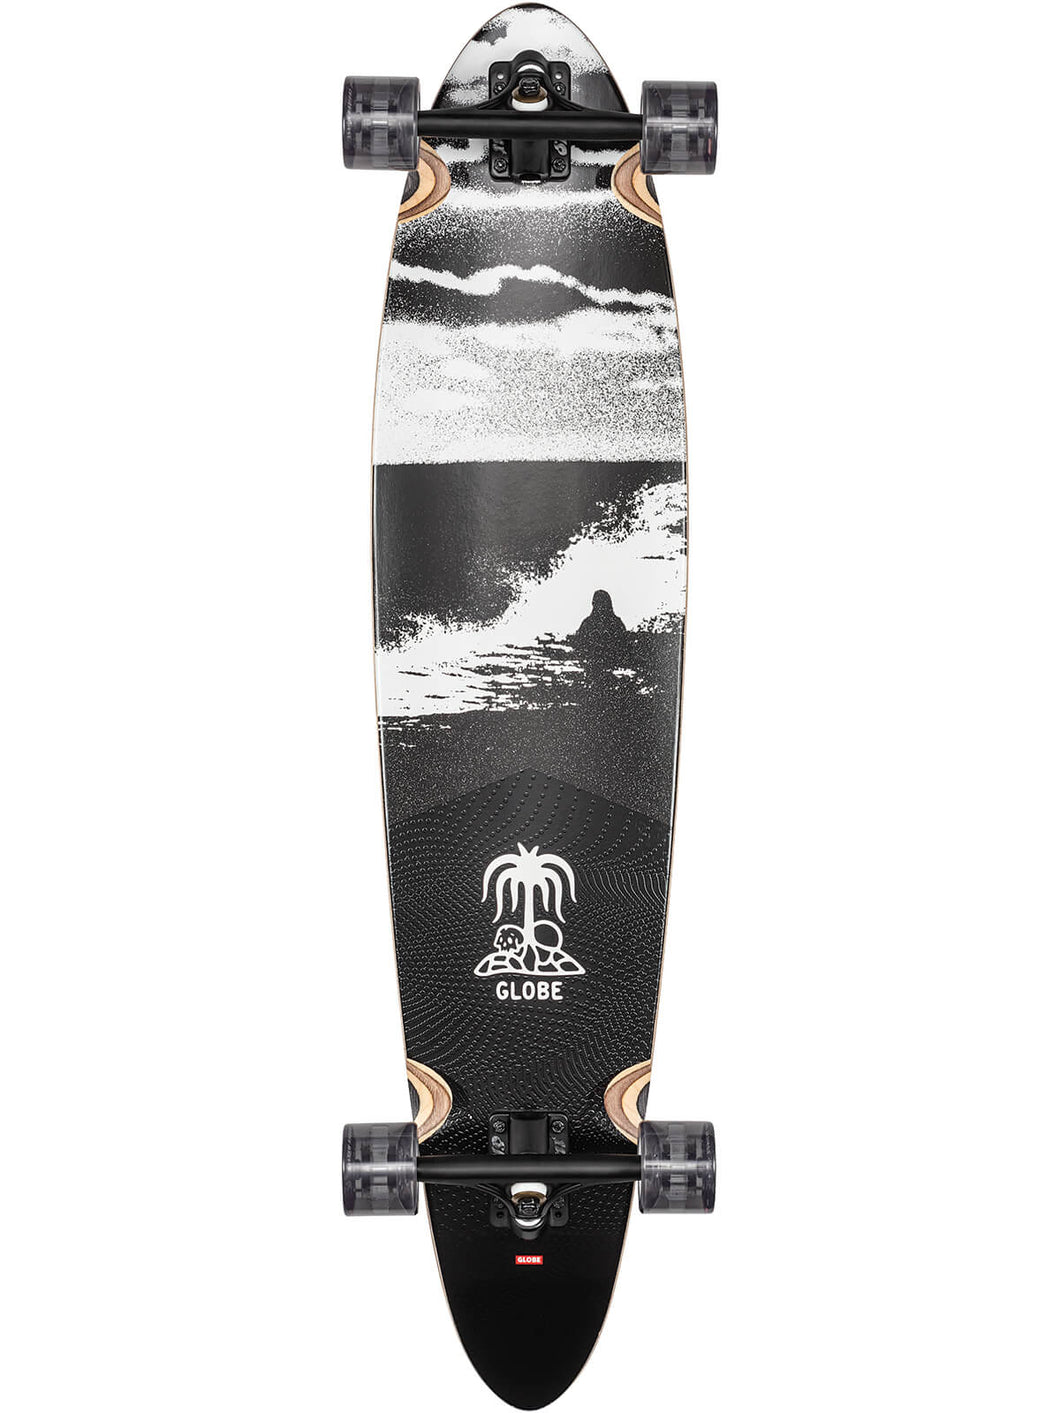 Globe Longboard skateboard Pinner Classic in Coconut/Black Tide